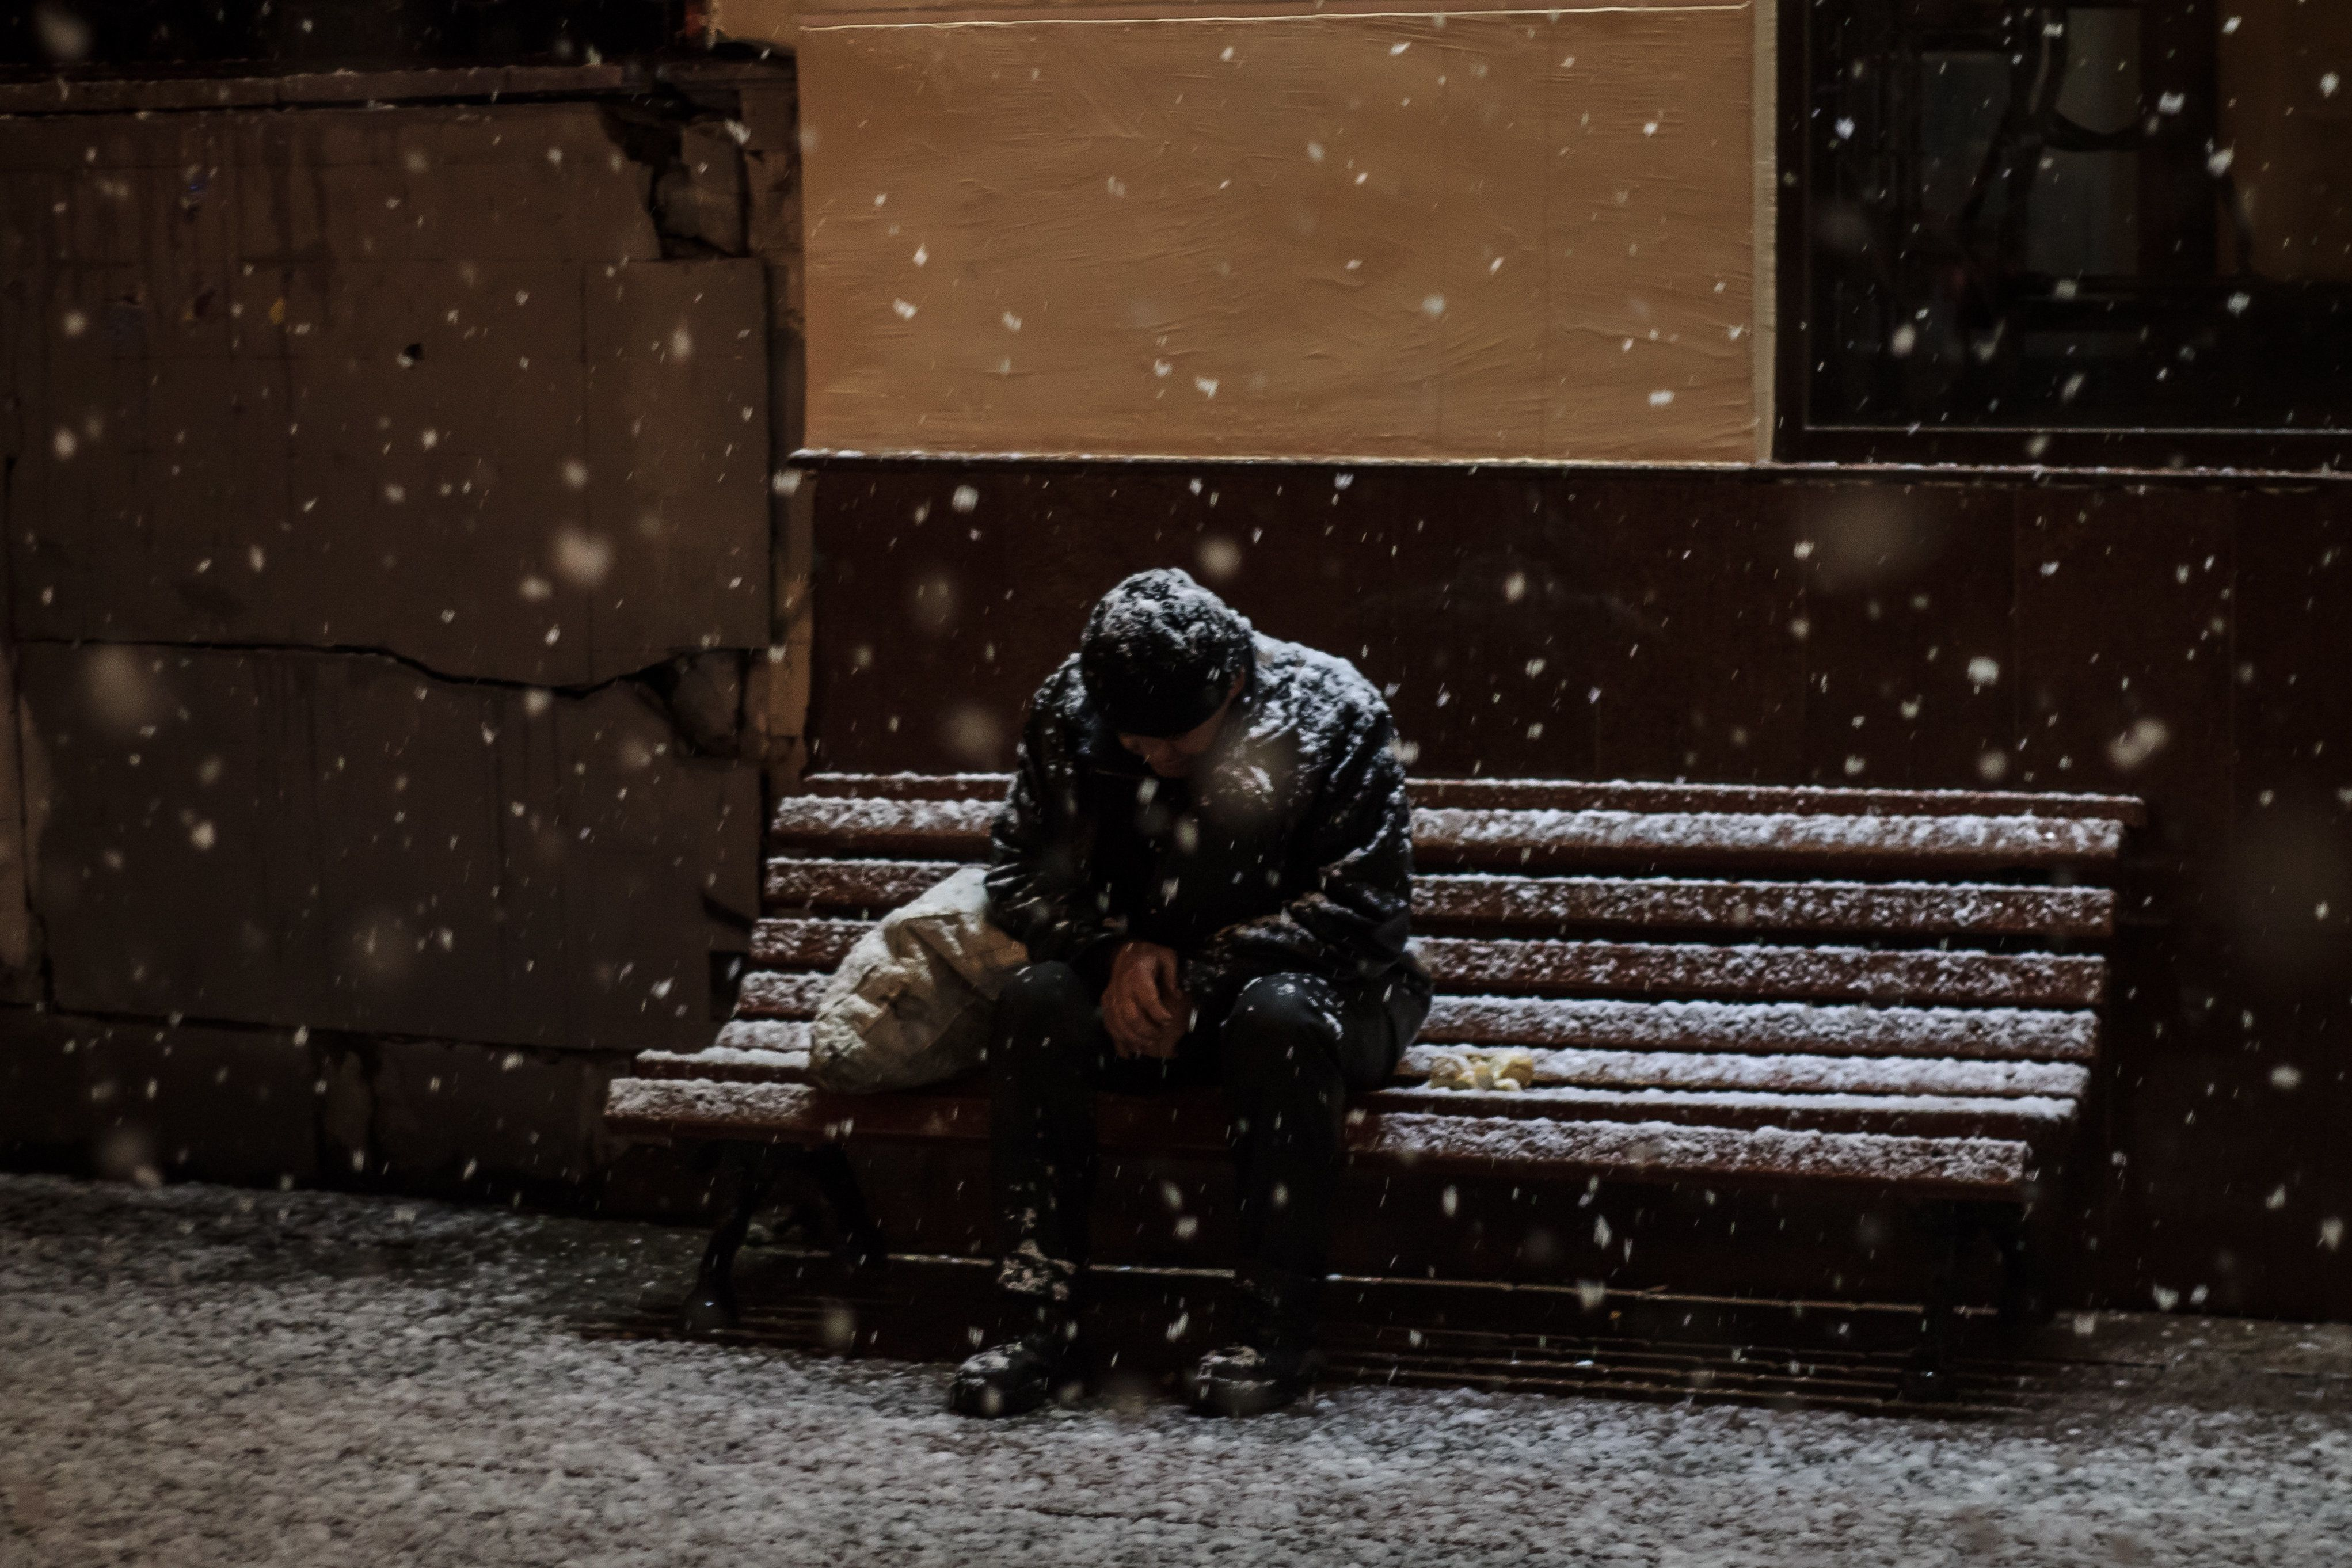 This Is A Brilliantly Simple Yet Effective Way To Help Homeless People As Winter Weather Sets